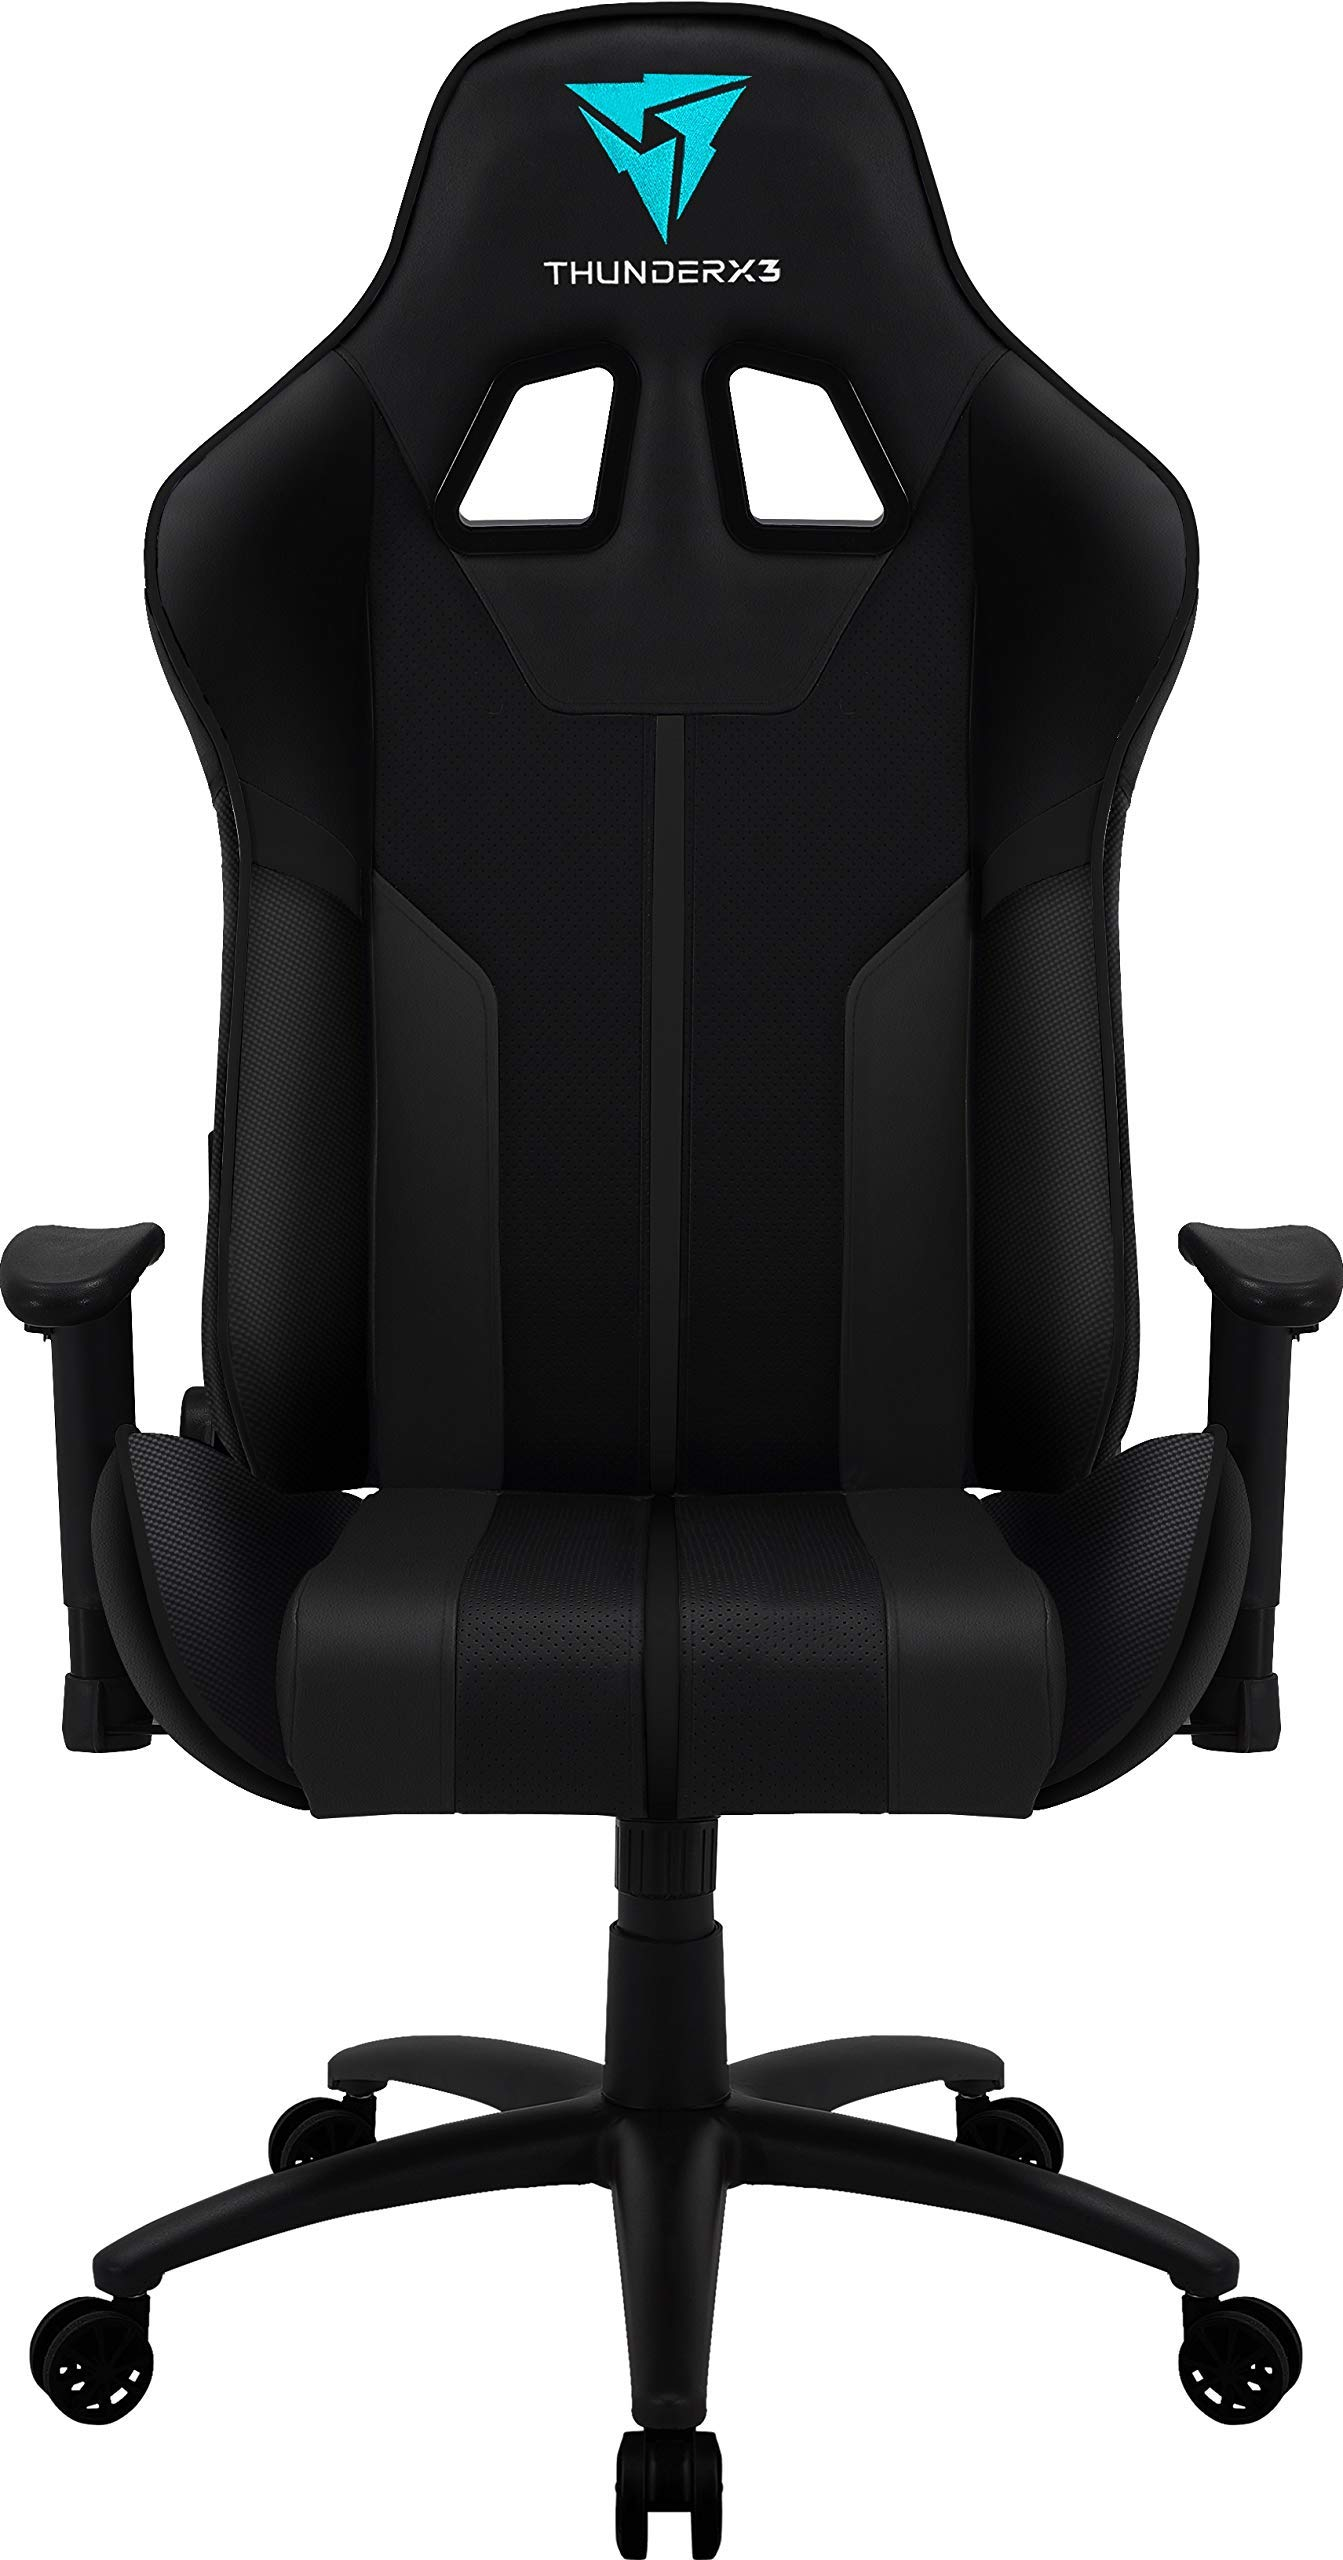 ThunderX3 Spain Silla gaming profesional